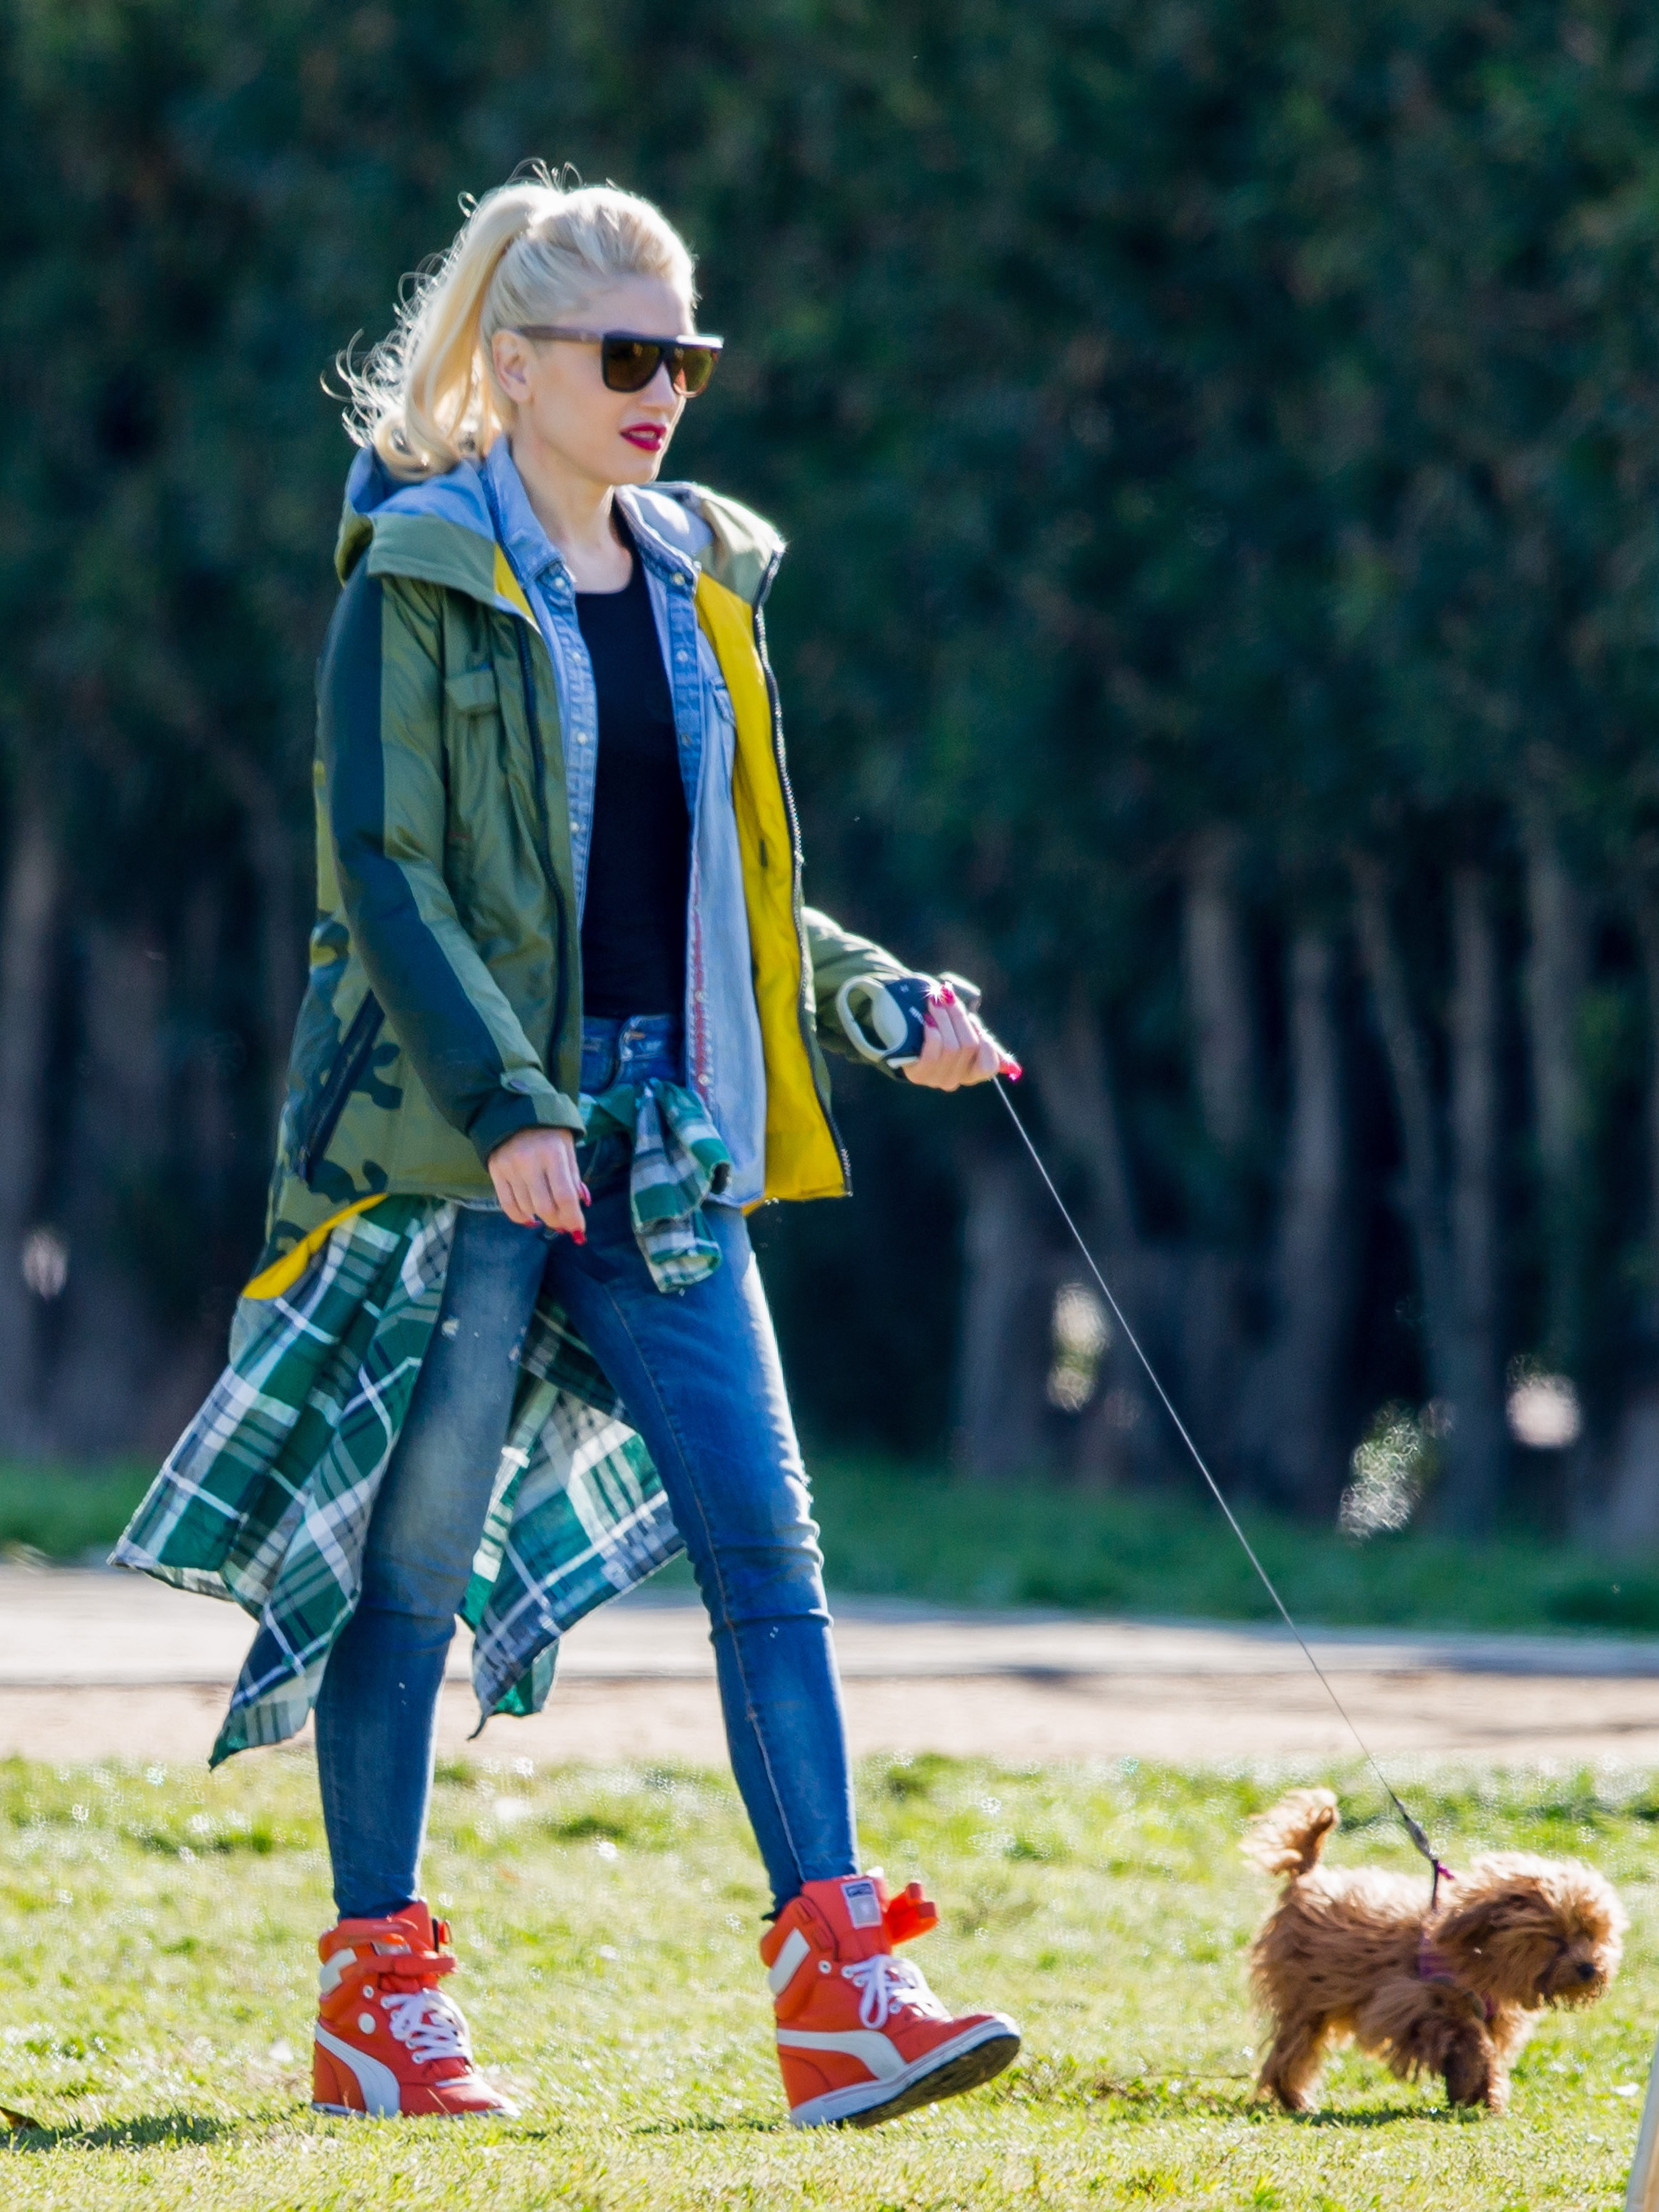 Gwen Stefani Heading To The Dog Park